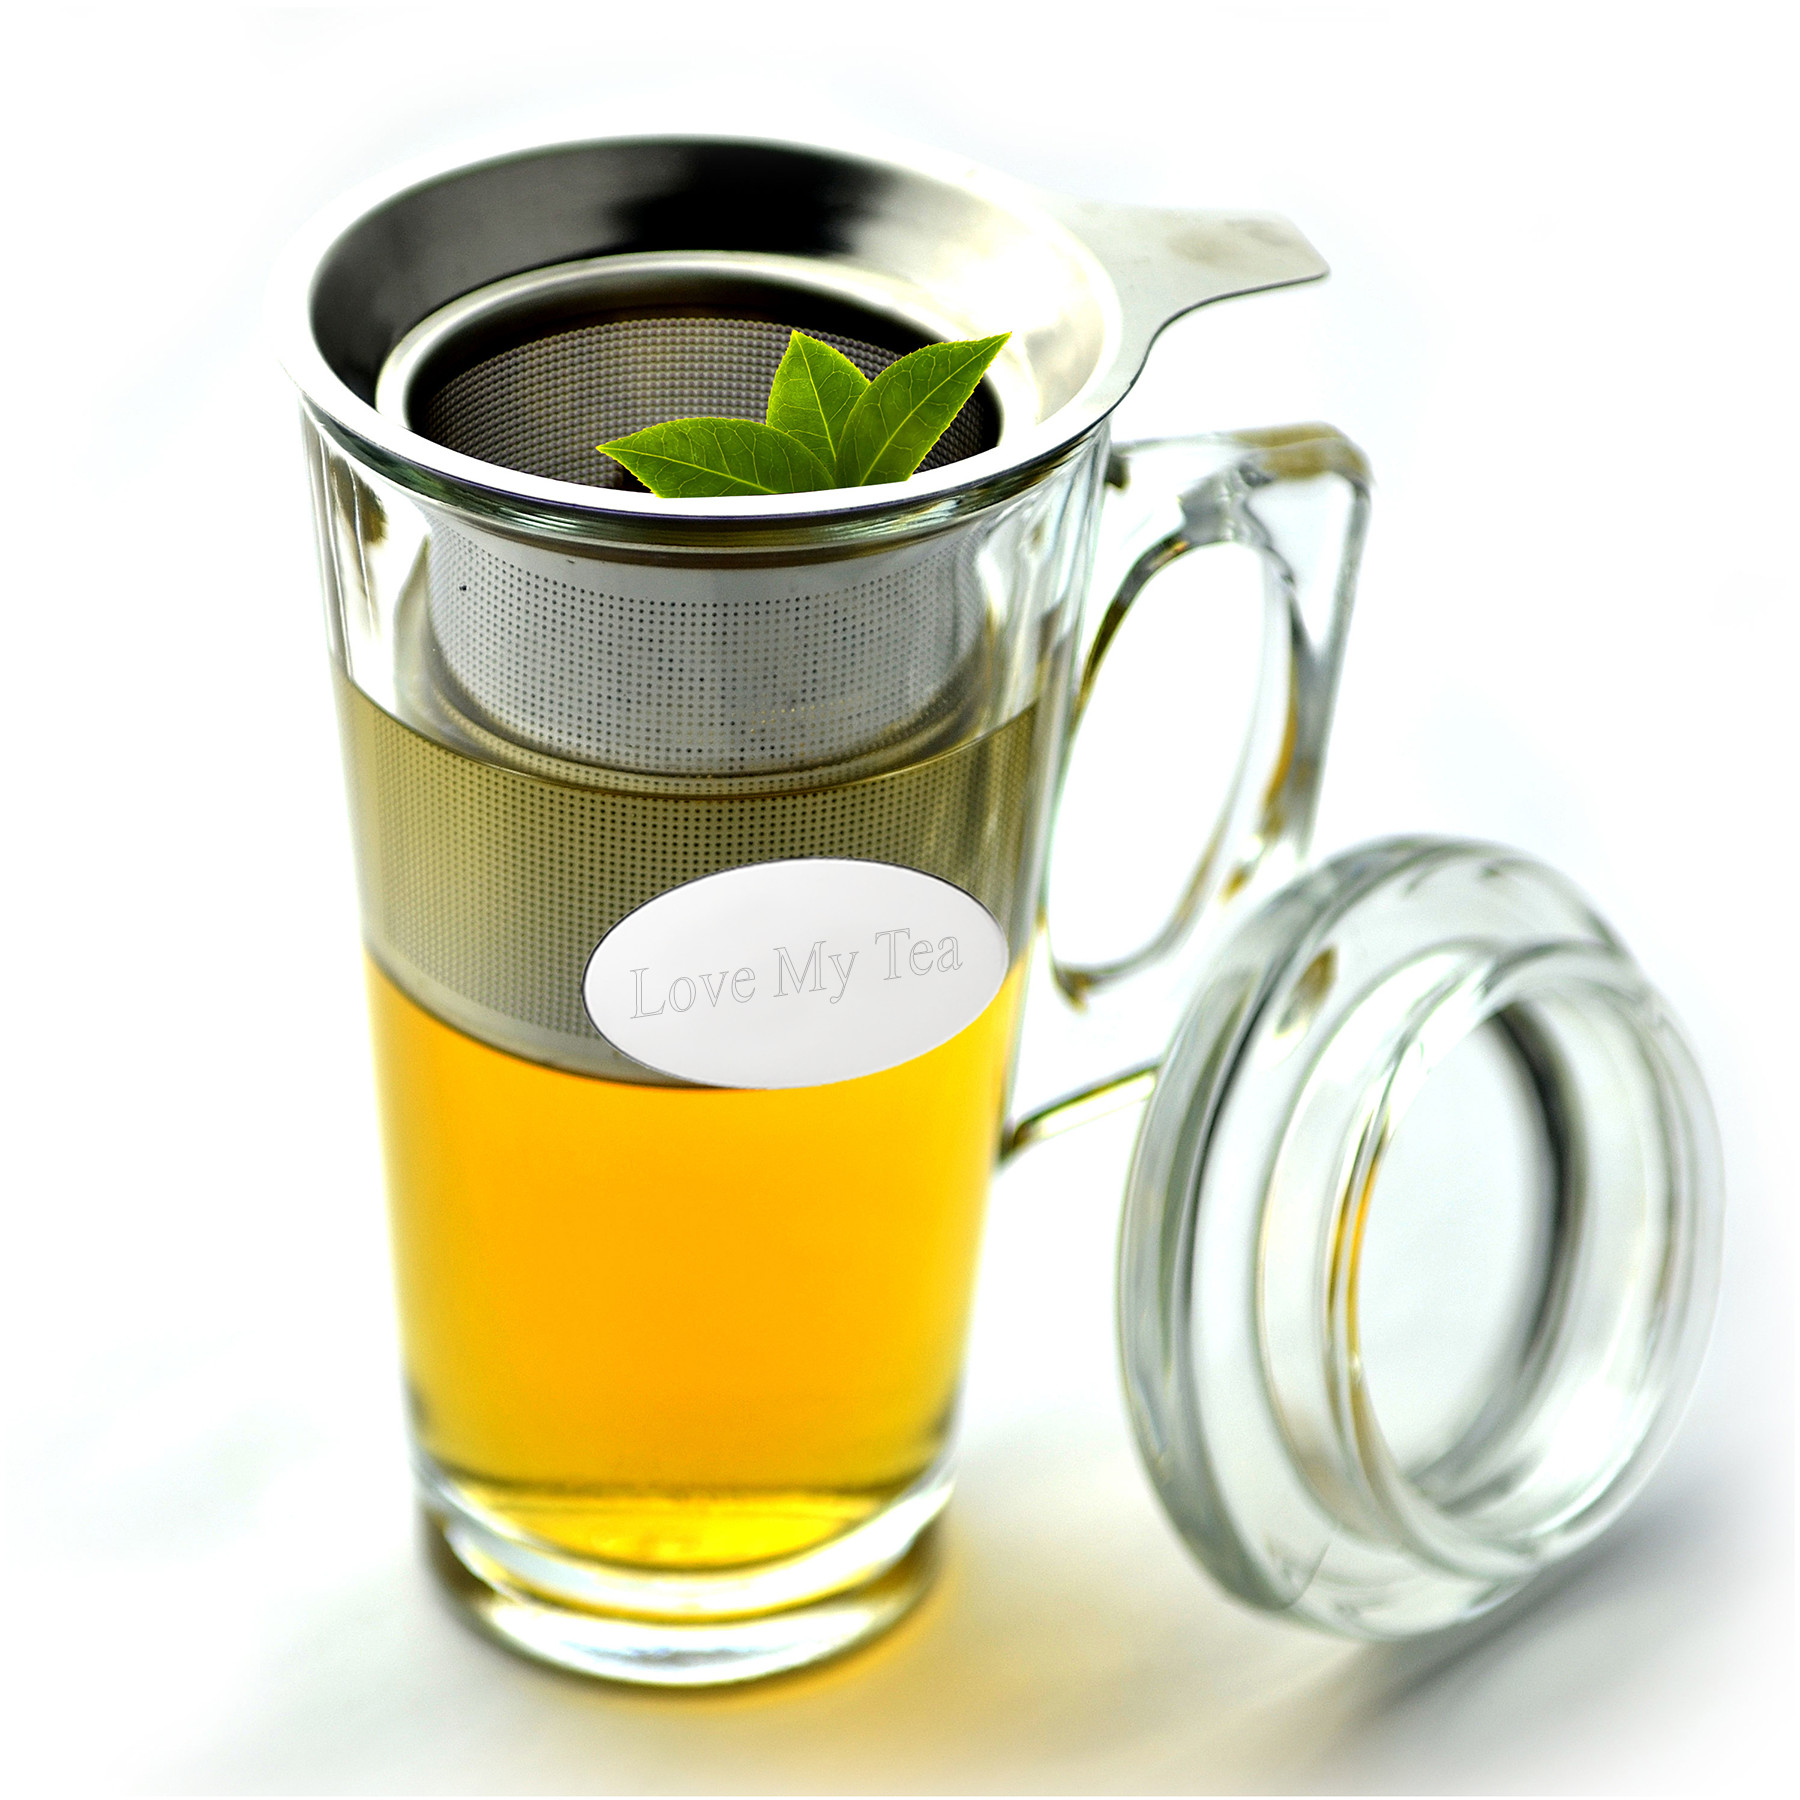 Gourmet Glass Mug Stainless Steel Tea Infuser Set